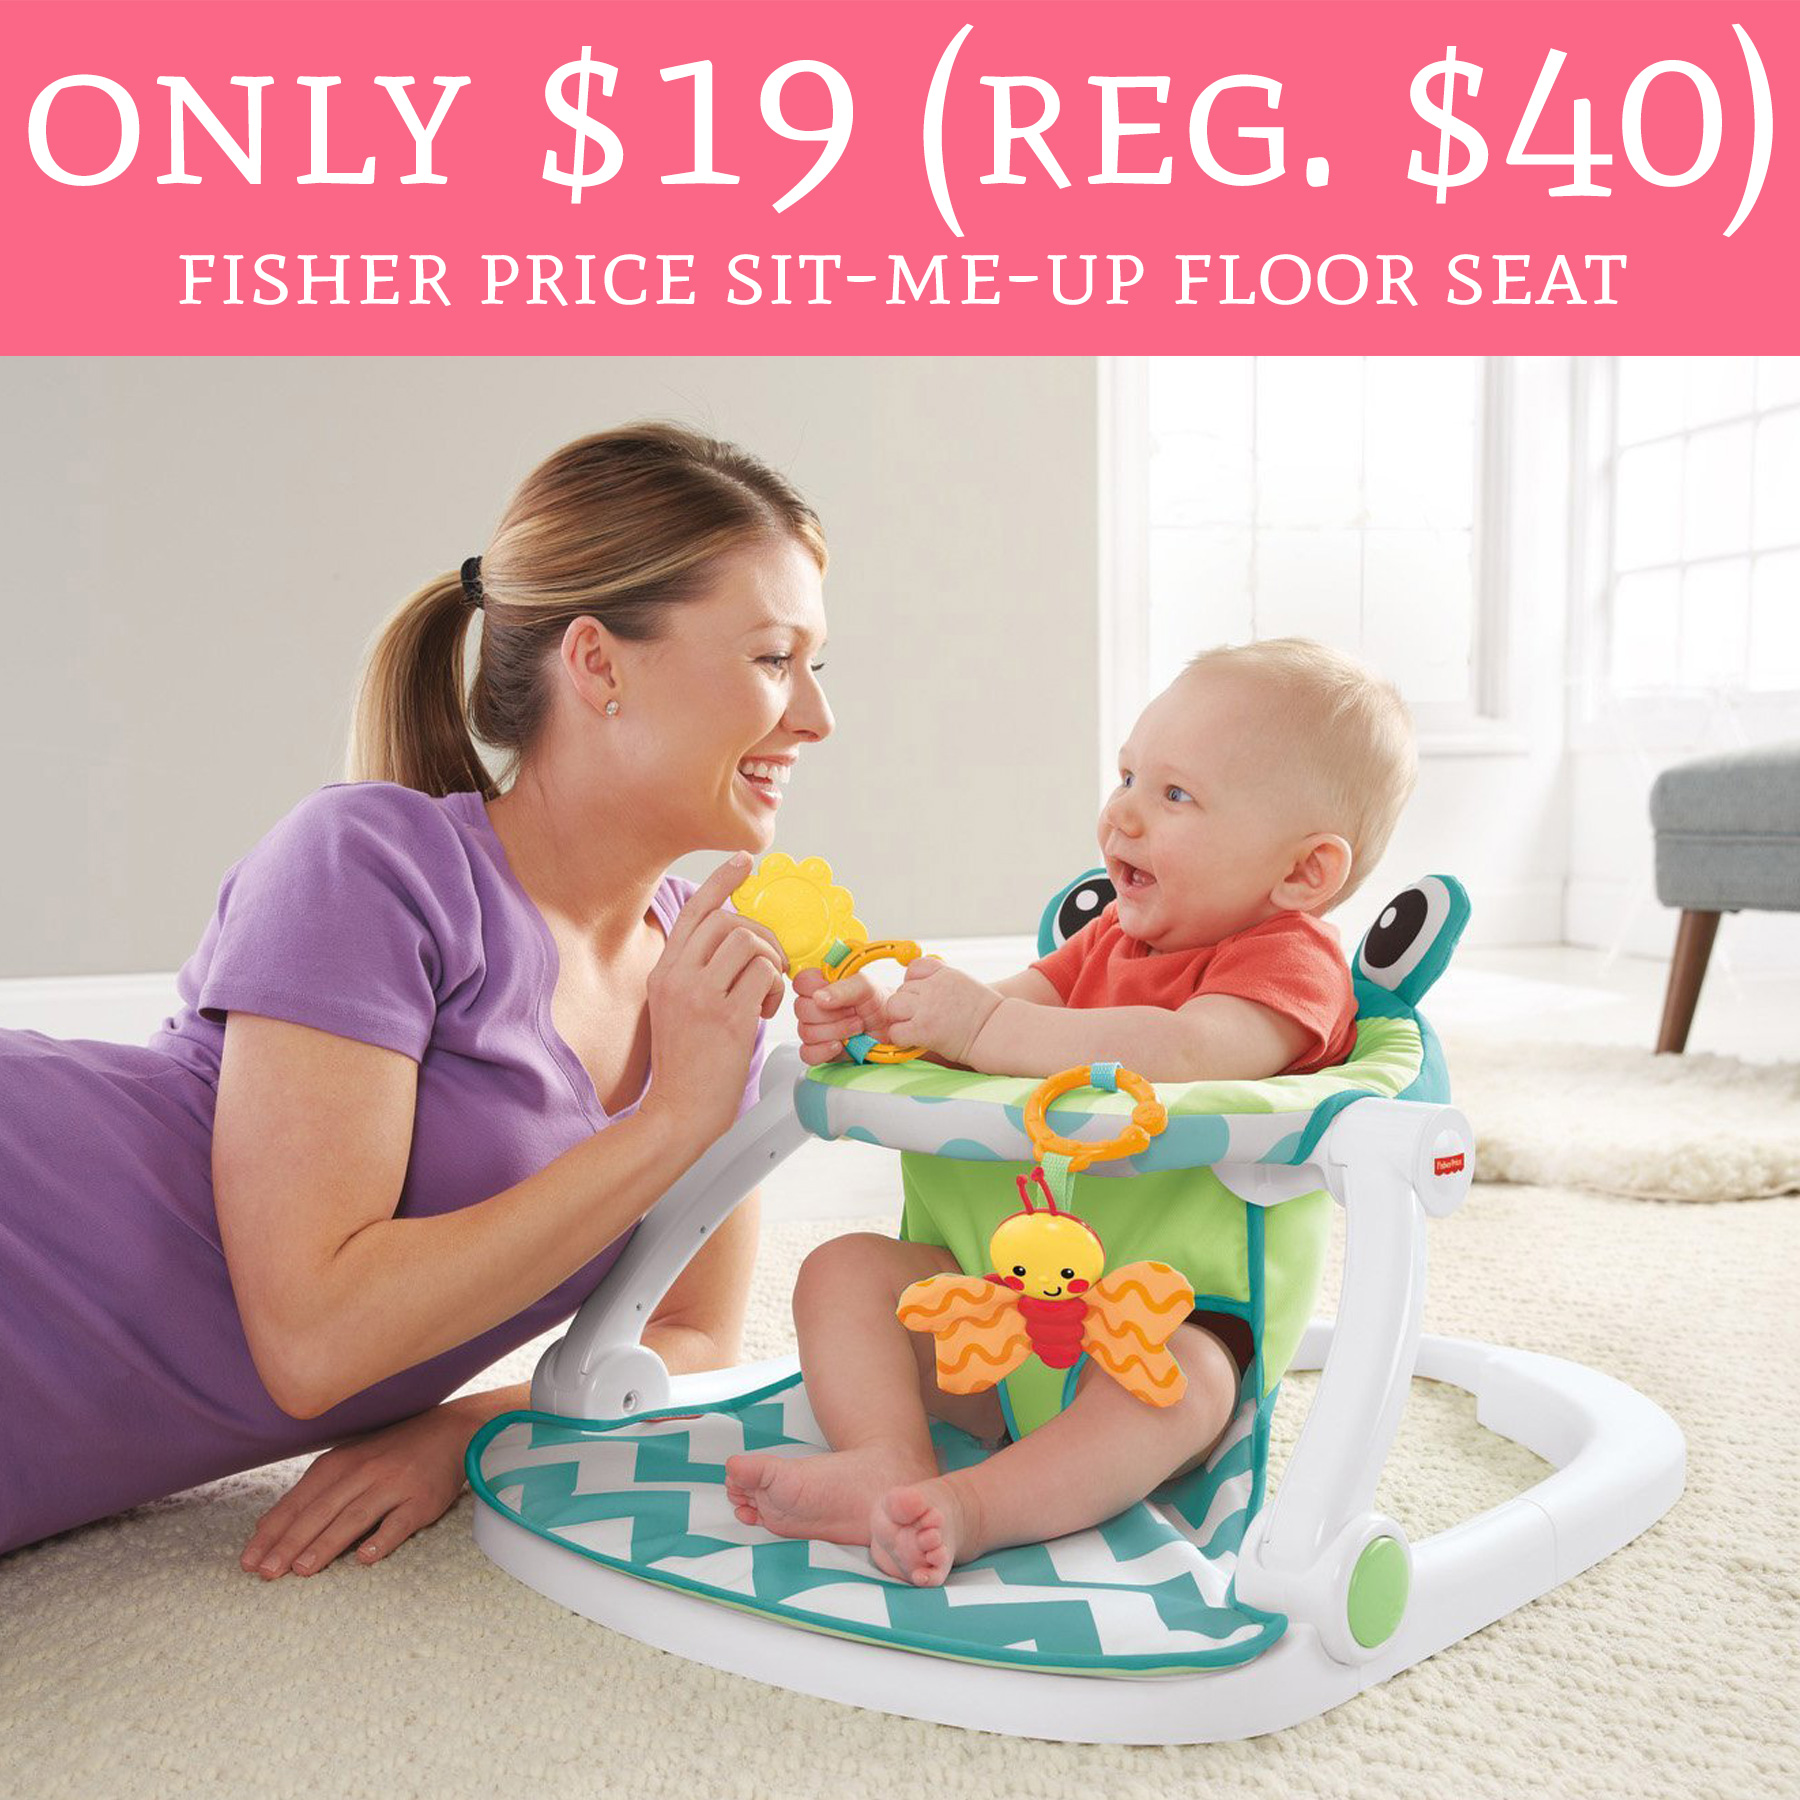 HOT ly Regular Fisher Price Sit Me Up Floor Seat